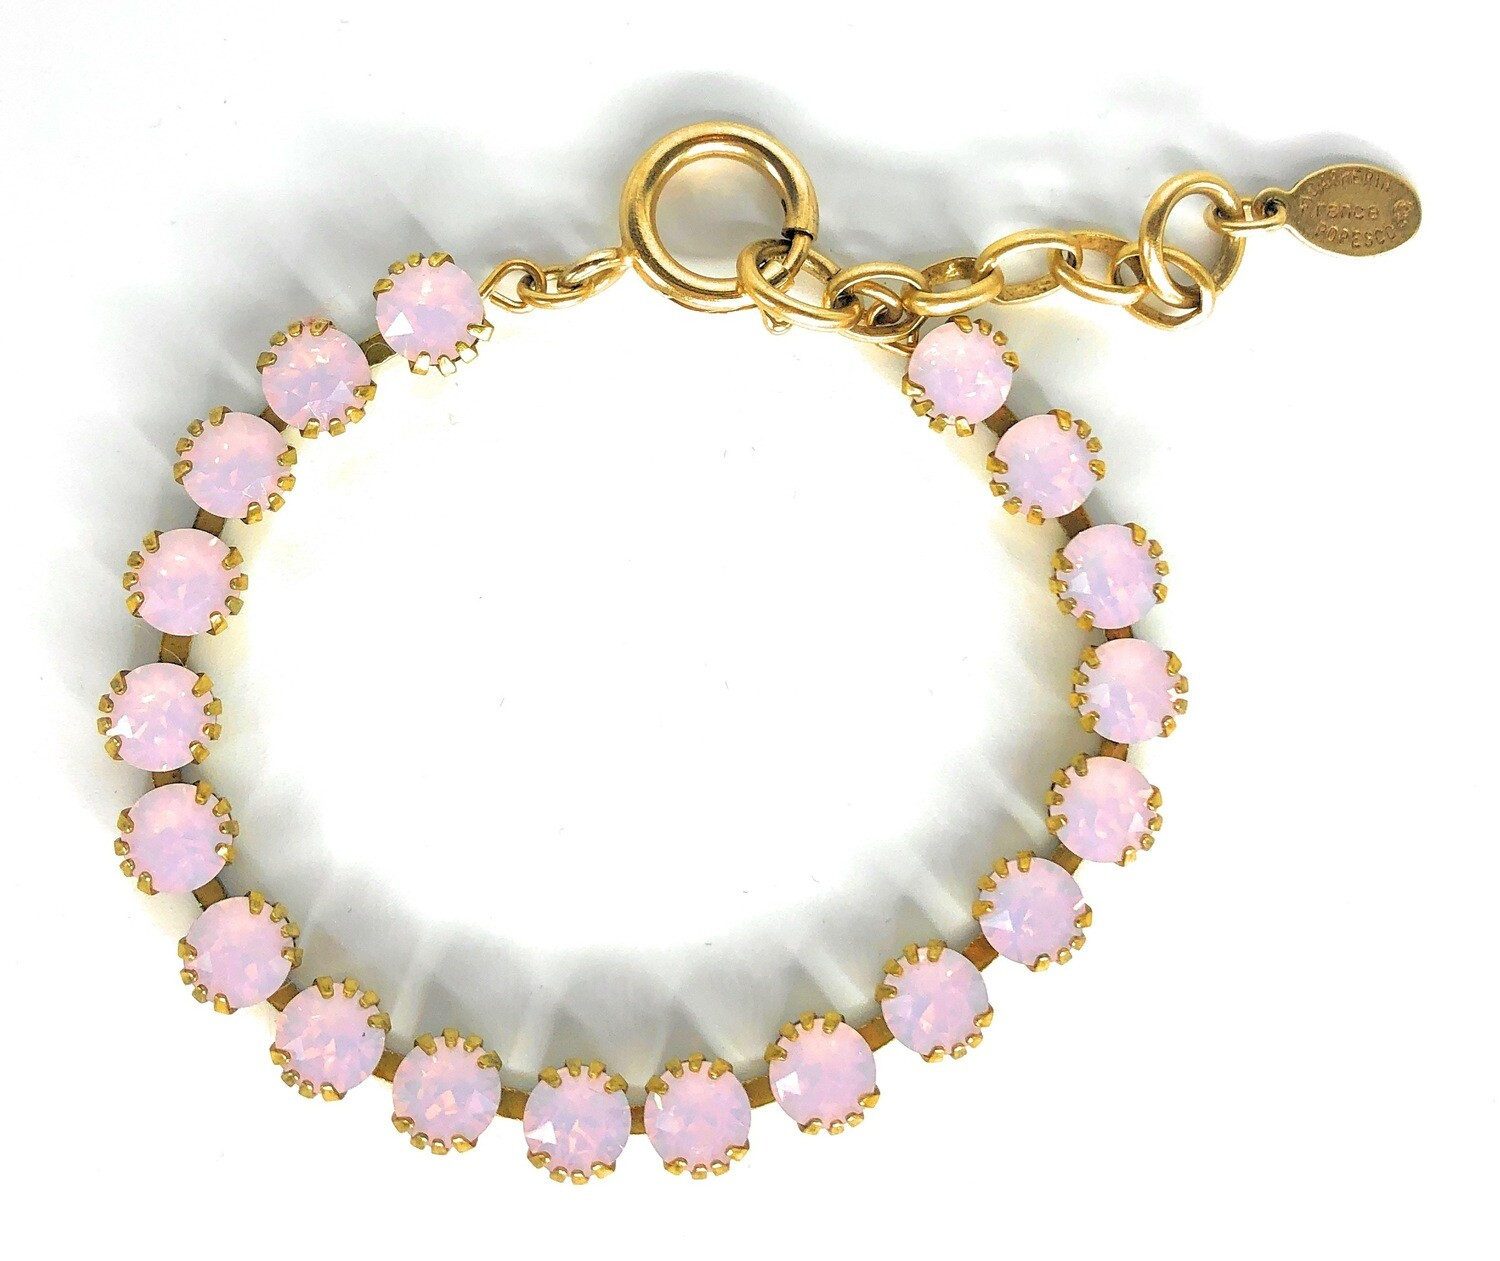 TENNIS BRACELET Gold With Rose-Water Swarovski Crysal